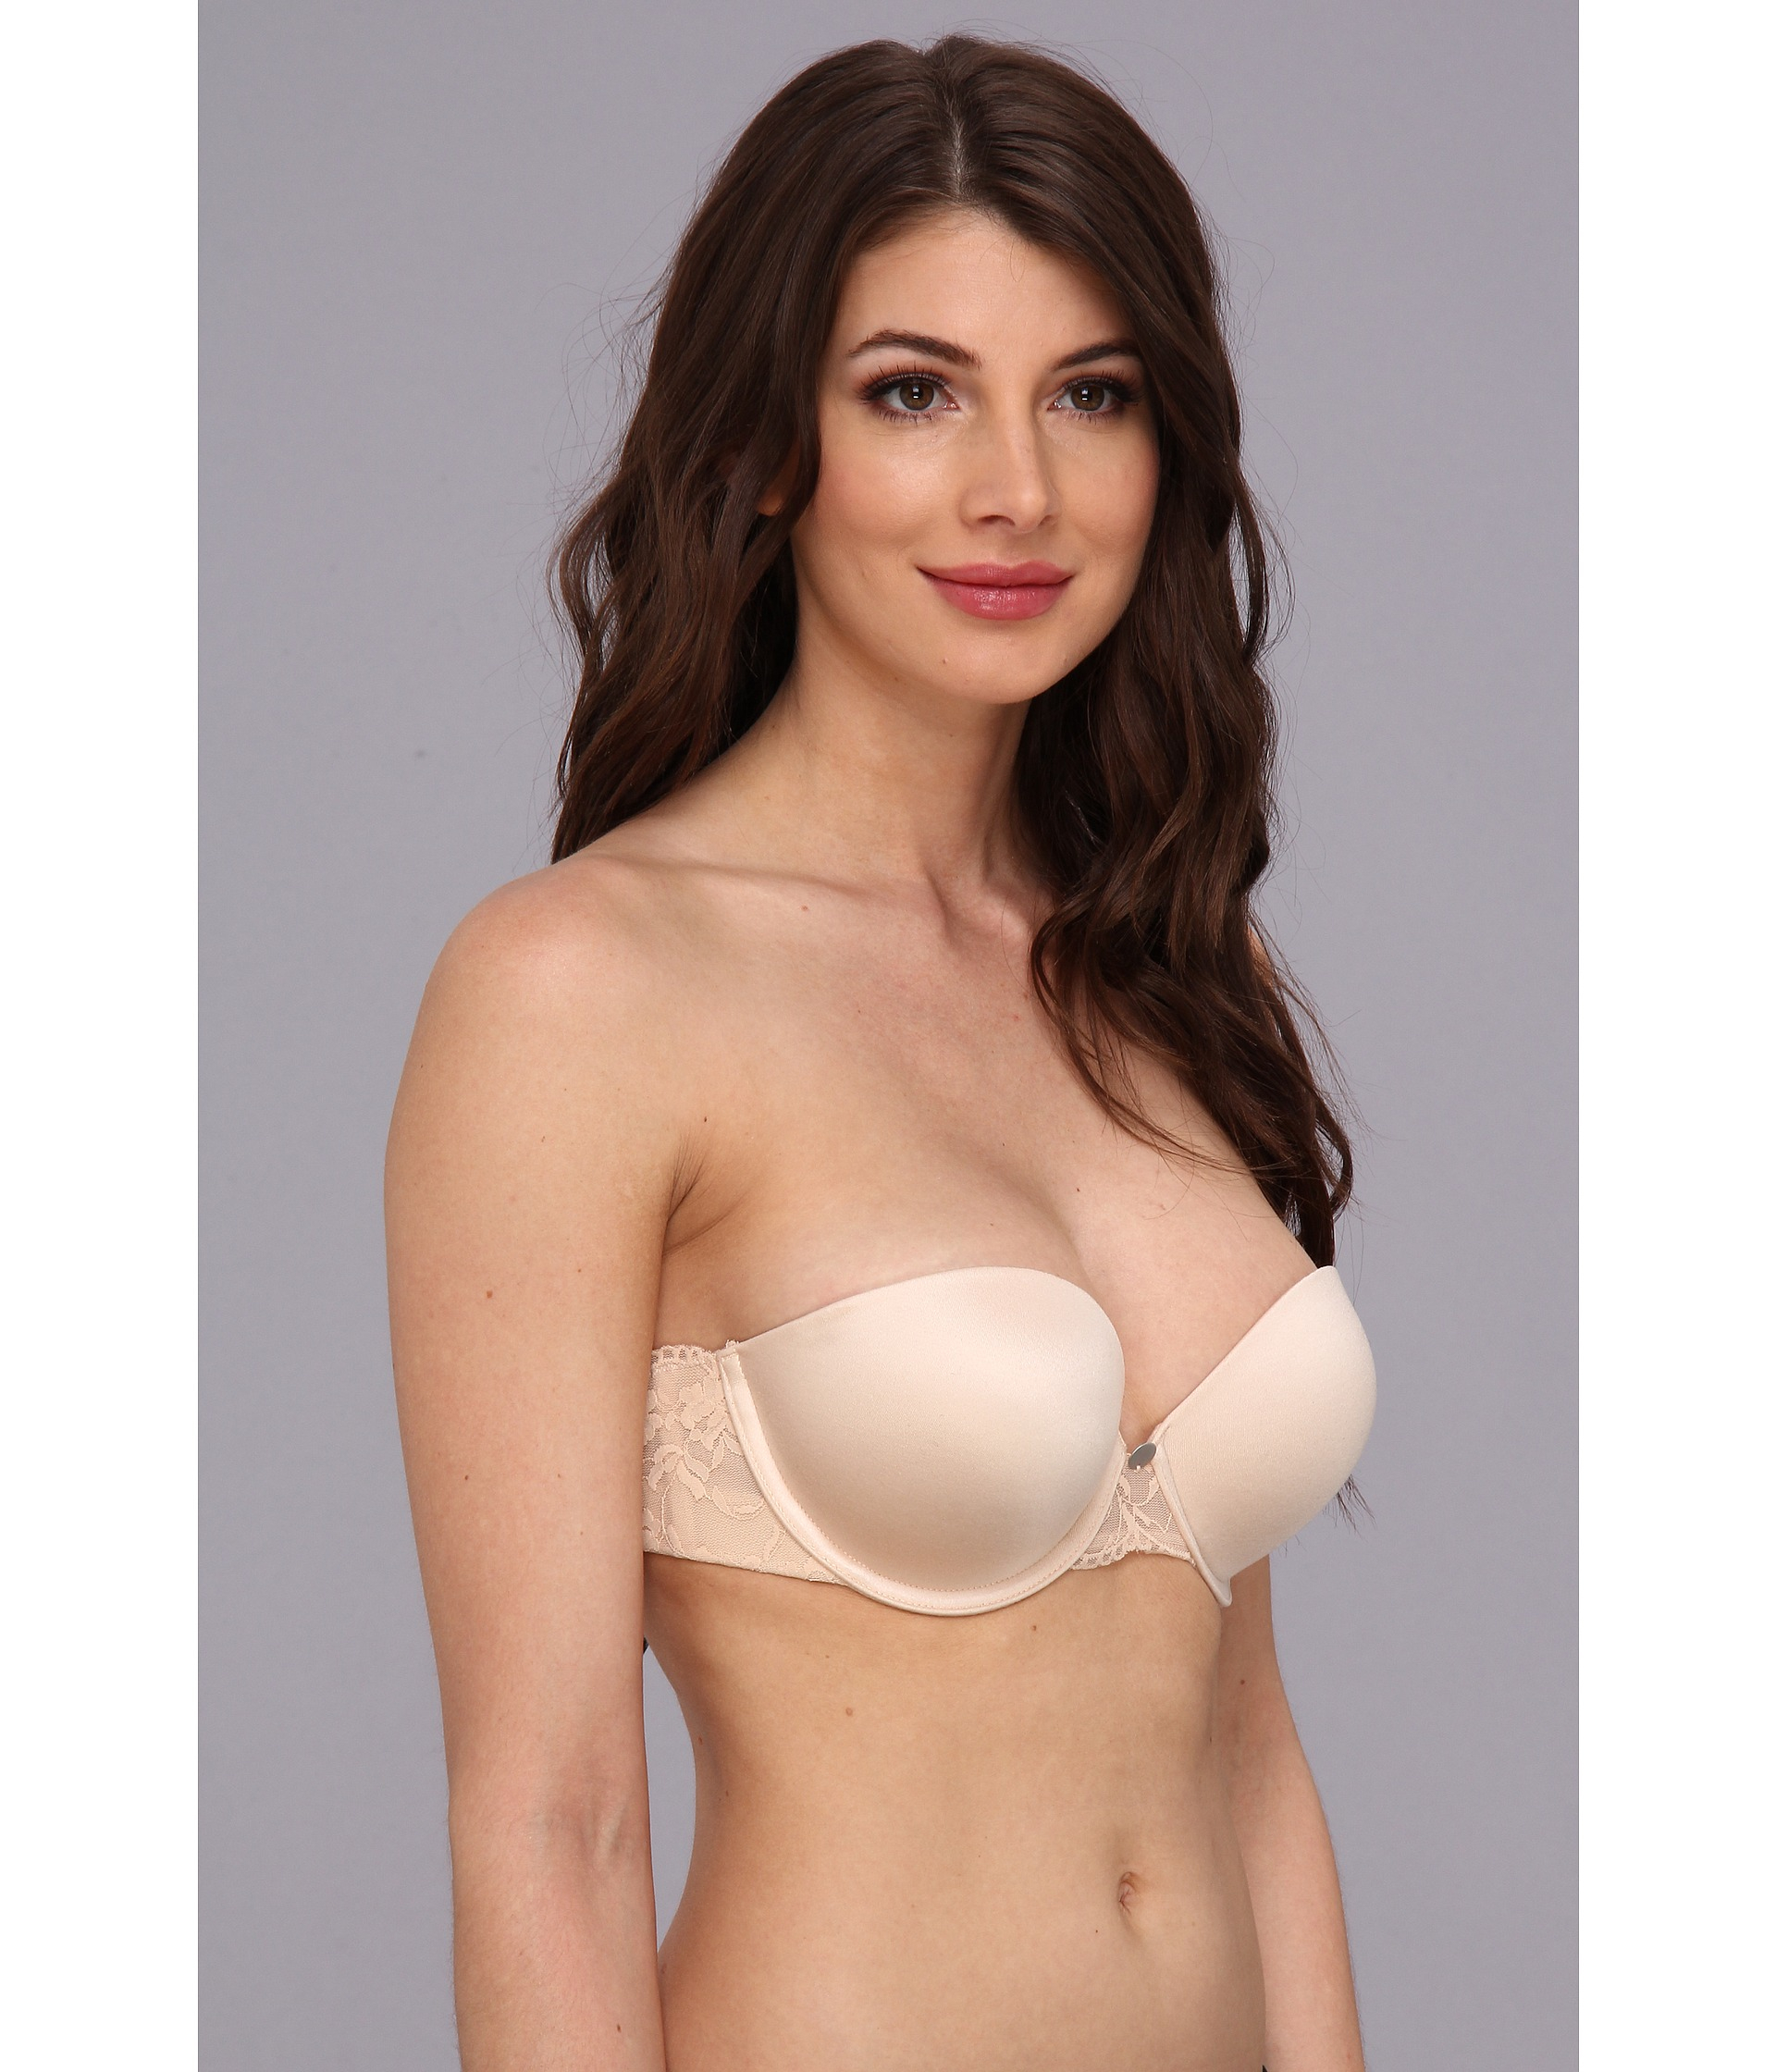 Lyst - DKNY Super Glam Strapless Push-up Bra 458111 in Natural 27d04f903